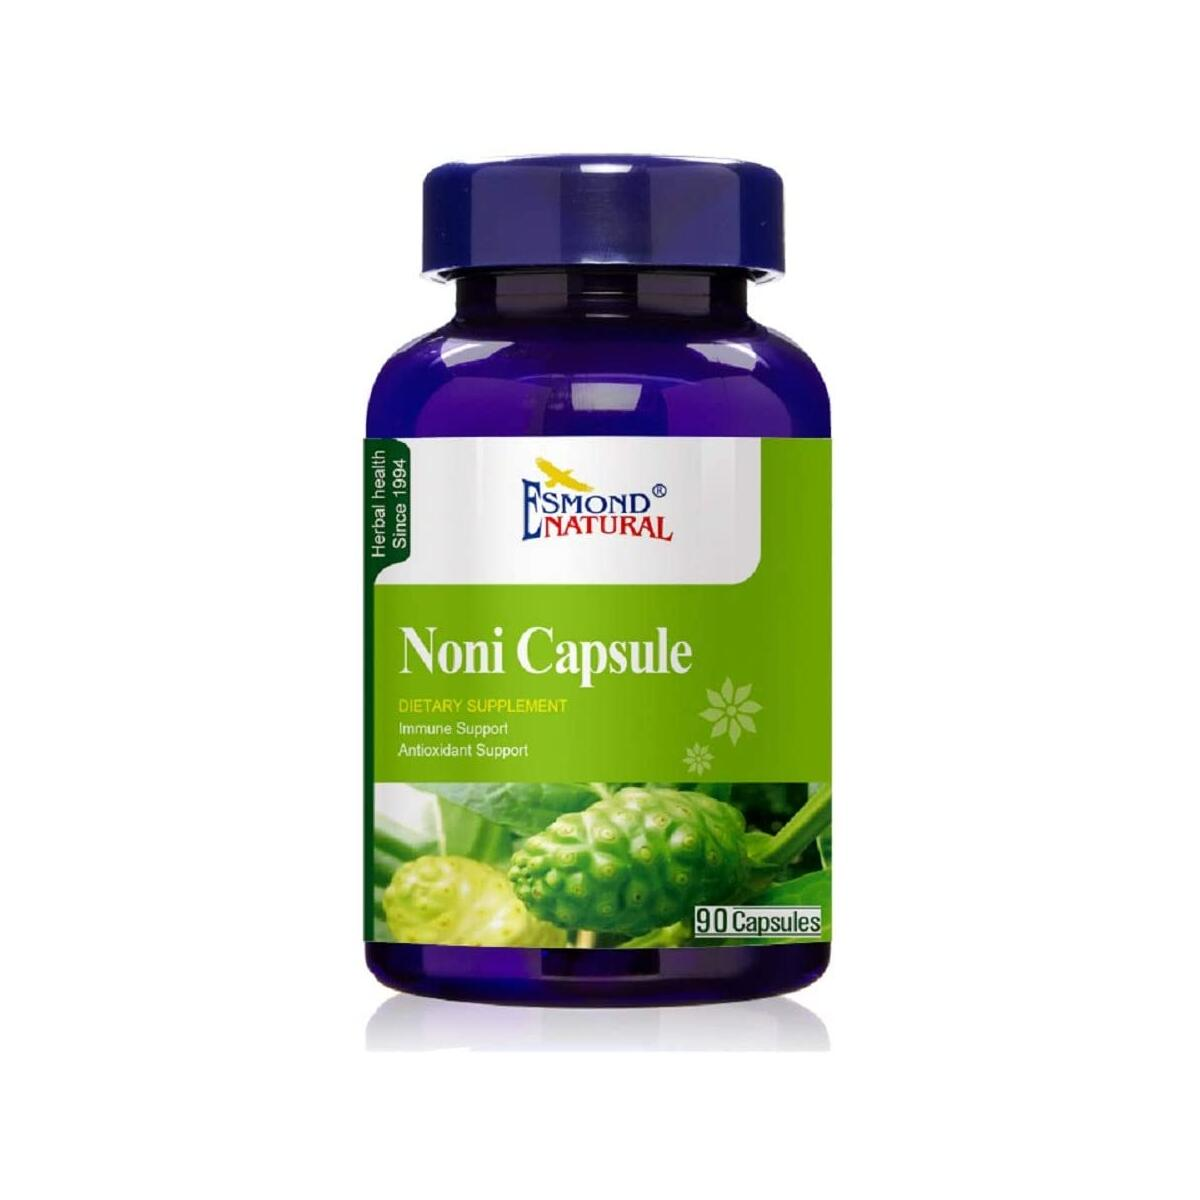 (5 Count, 25% Off) Esmond Natural: Noni Capsule (Immune Support, Antioxidant Support), GMP, Natural Product Assn Certified, Made in USA-450 Capsules